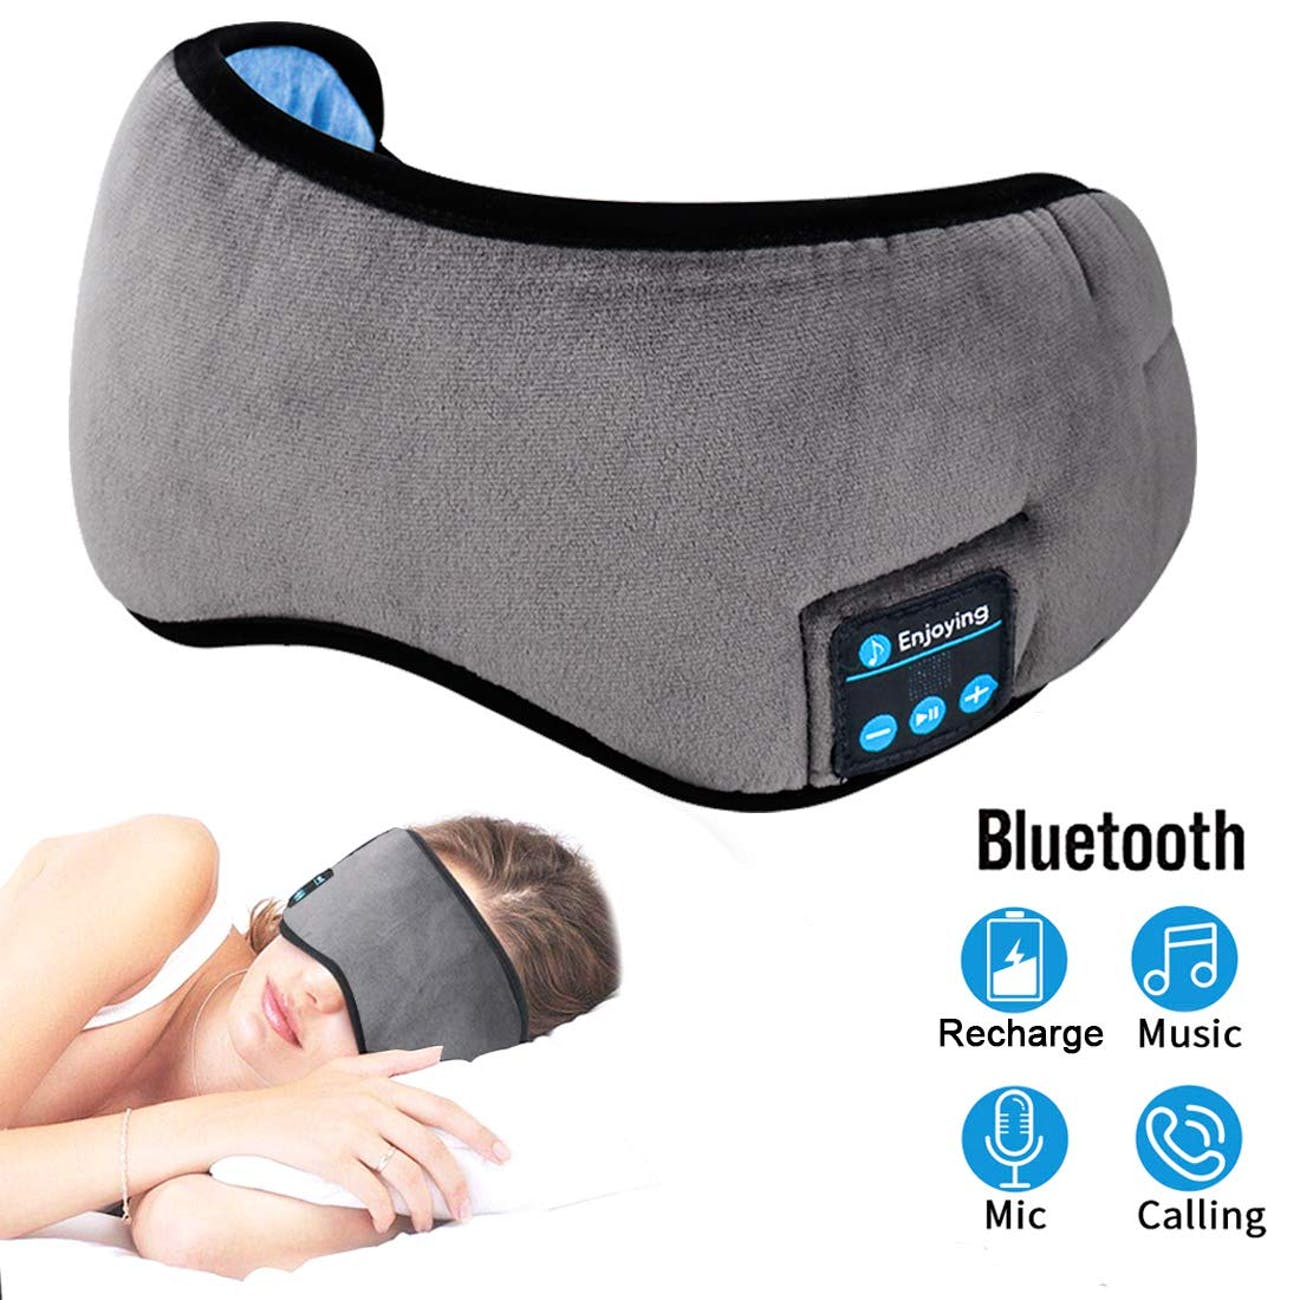 Bluetooth Eye Mask Sleep Headphones,ZesGood Music Travel Sleep Mask Wireless Bluetooth Headphones Built -in Speakers Microphone Handsfree Adjustable and Washable